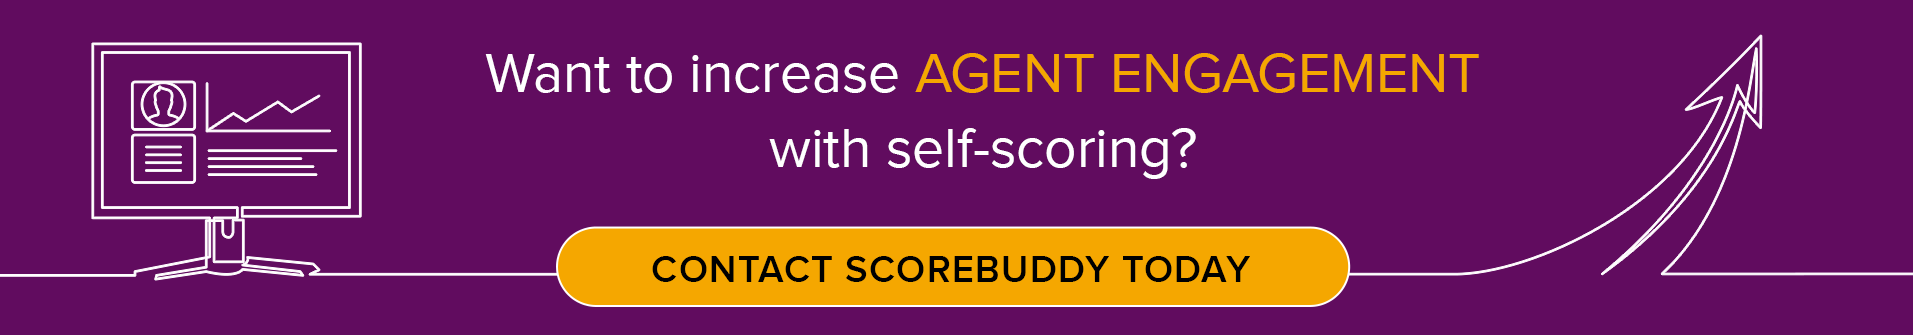 Increase agent engagement with self-scoring